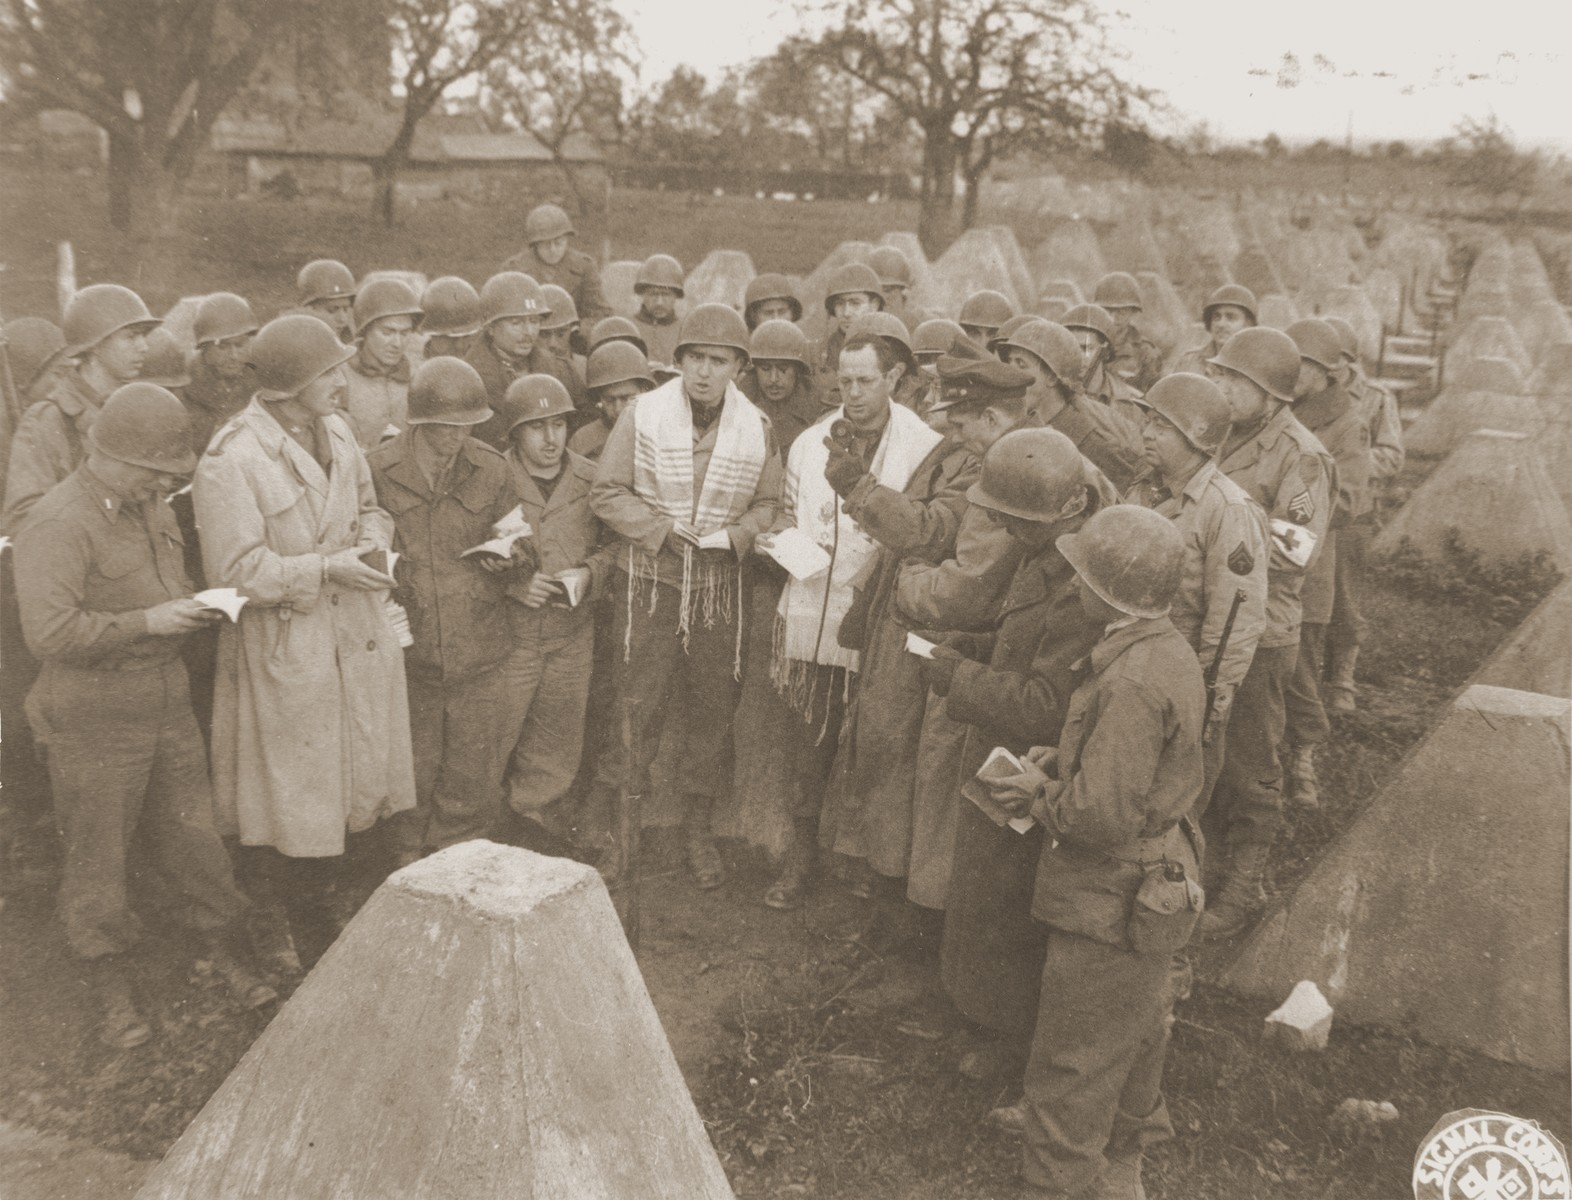 "Mac Fuchs, New York City Cantor, sings as Rabbi Sydney Lefkowitz, Richmond, Va., conducts the first Jewish services from Germany.    James Cassidy of NBC holds the microphone over which the services were broadcast to the U.S.  The services were held in the middle of the concrete ""Dragon-Teeth"" Tank Barriers of the Siegried Line."